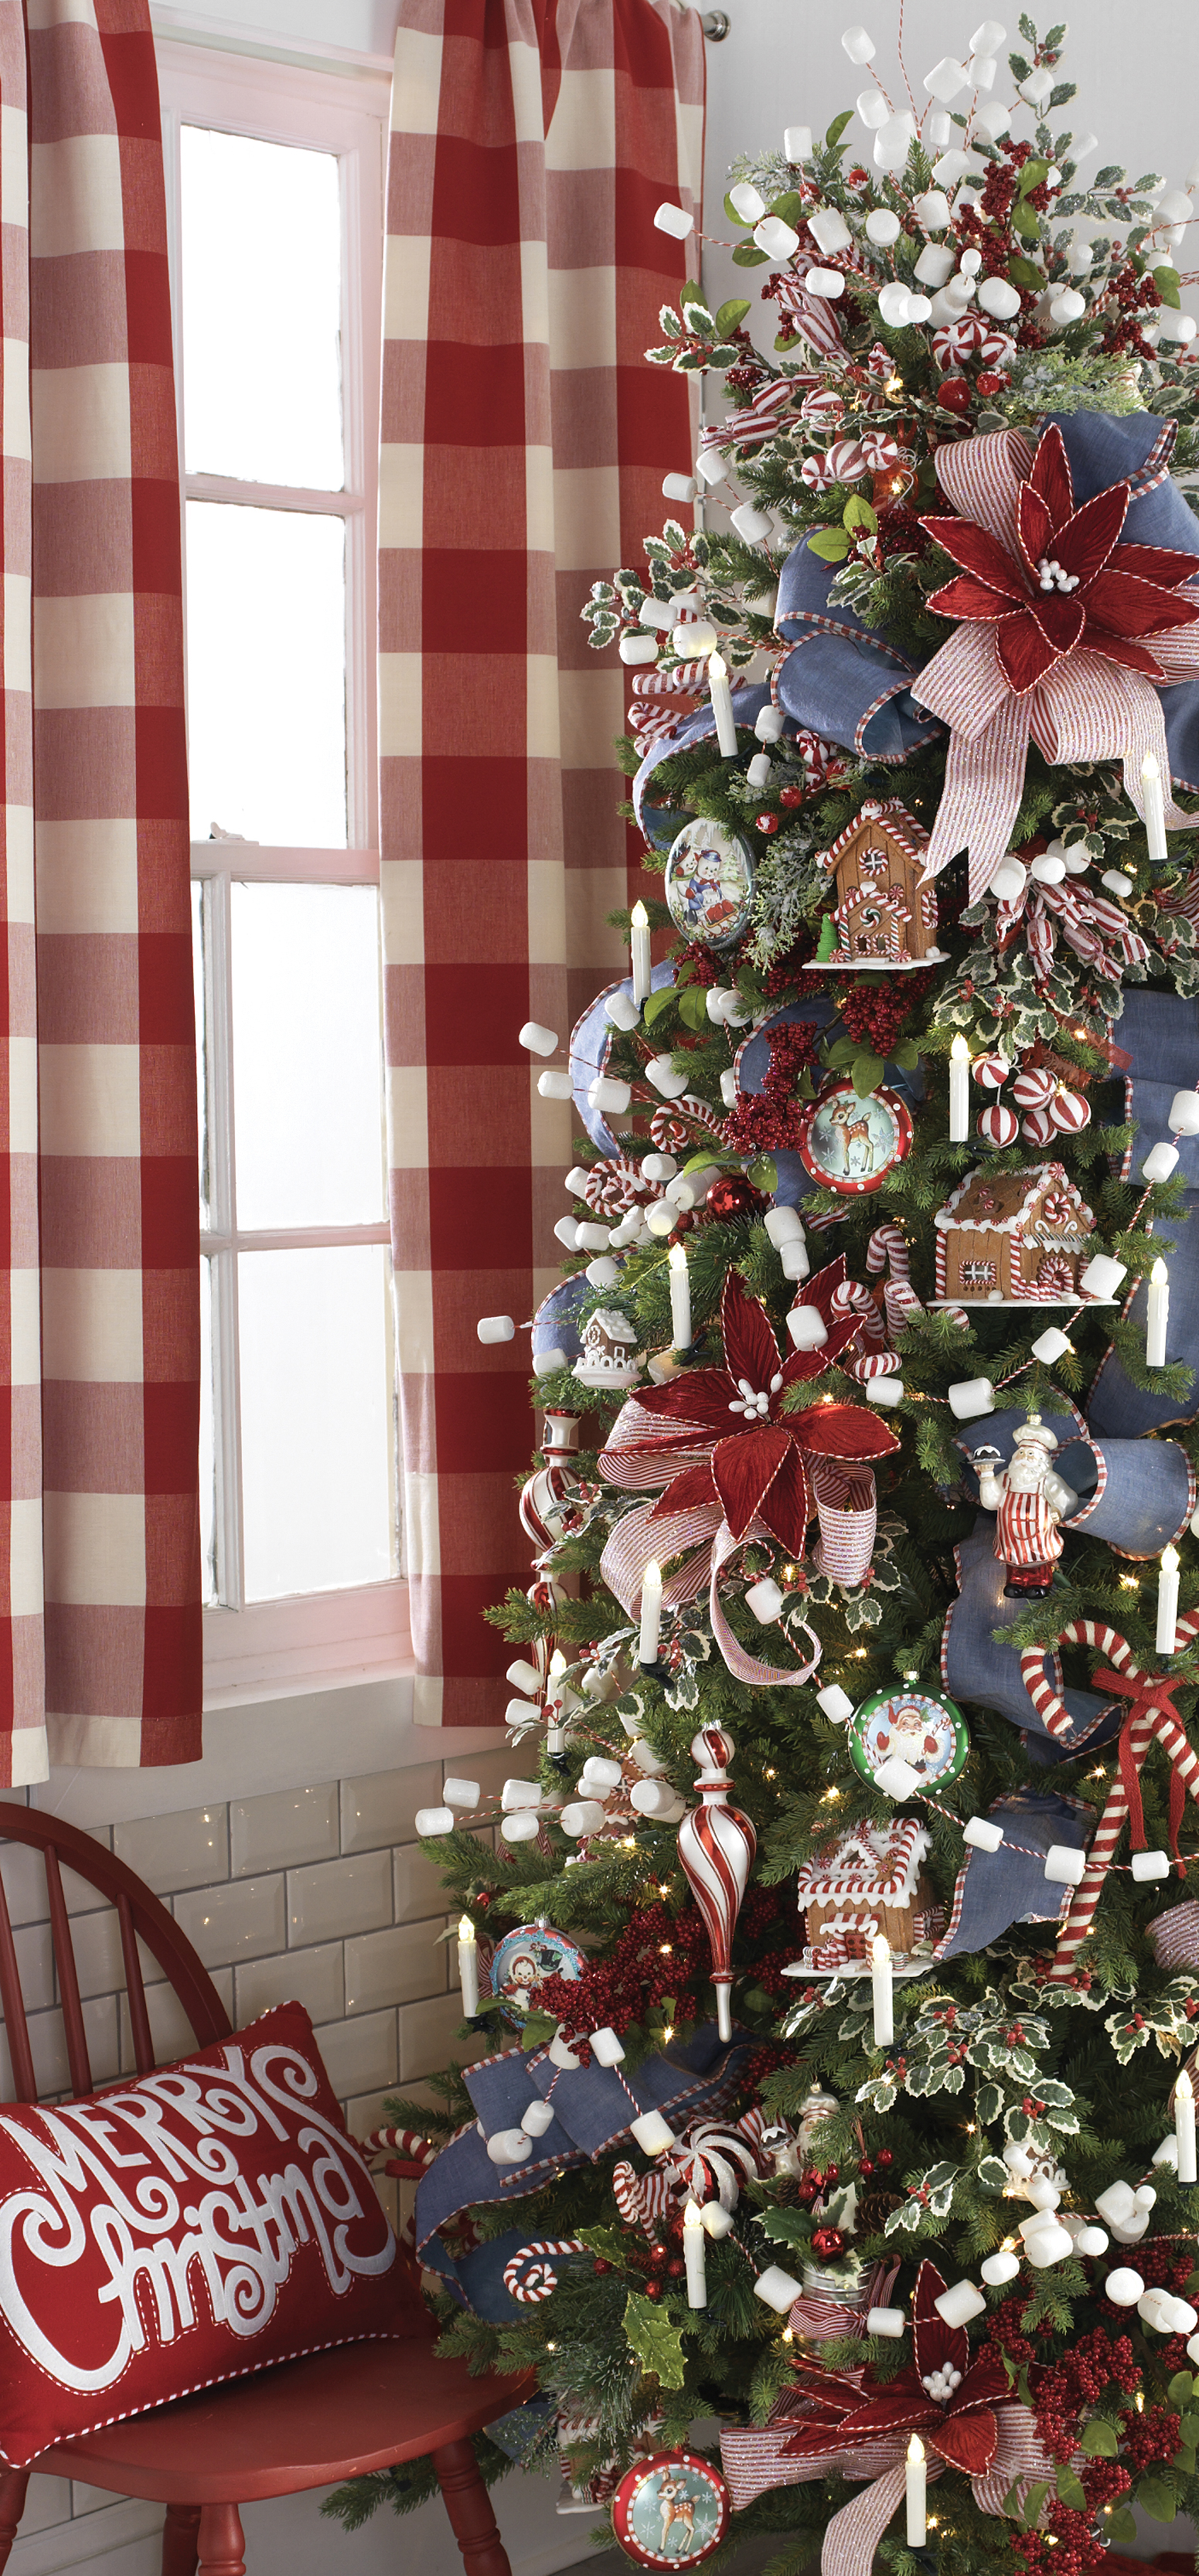 Unique Christmas Decorations Christmas Shop Christmas Ornaments - Christmas Tree Themes Pictures